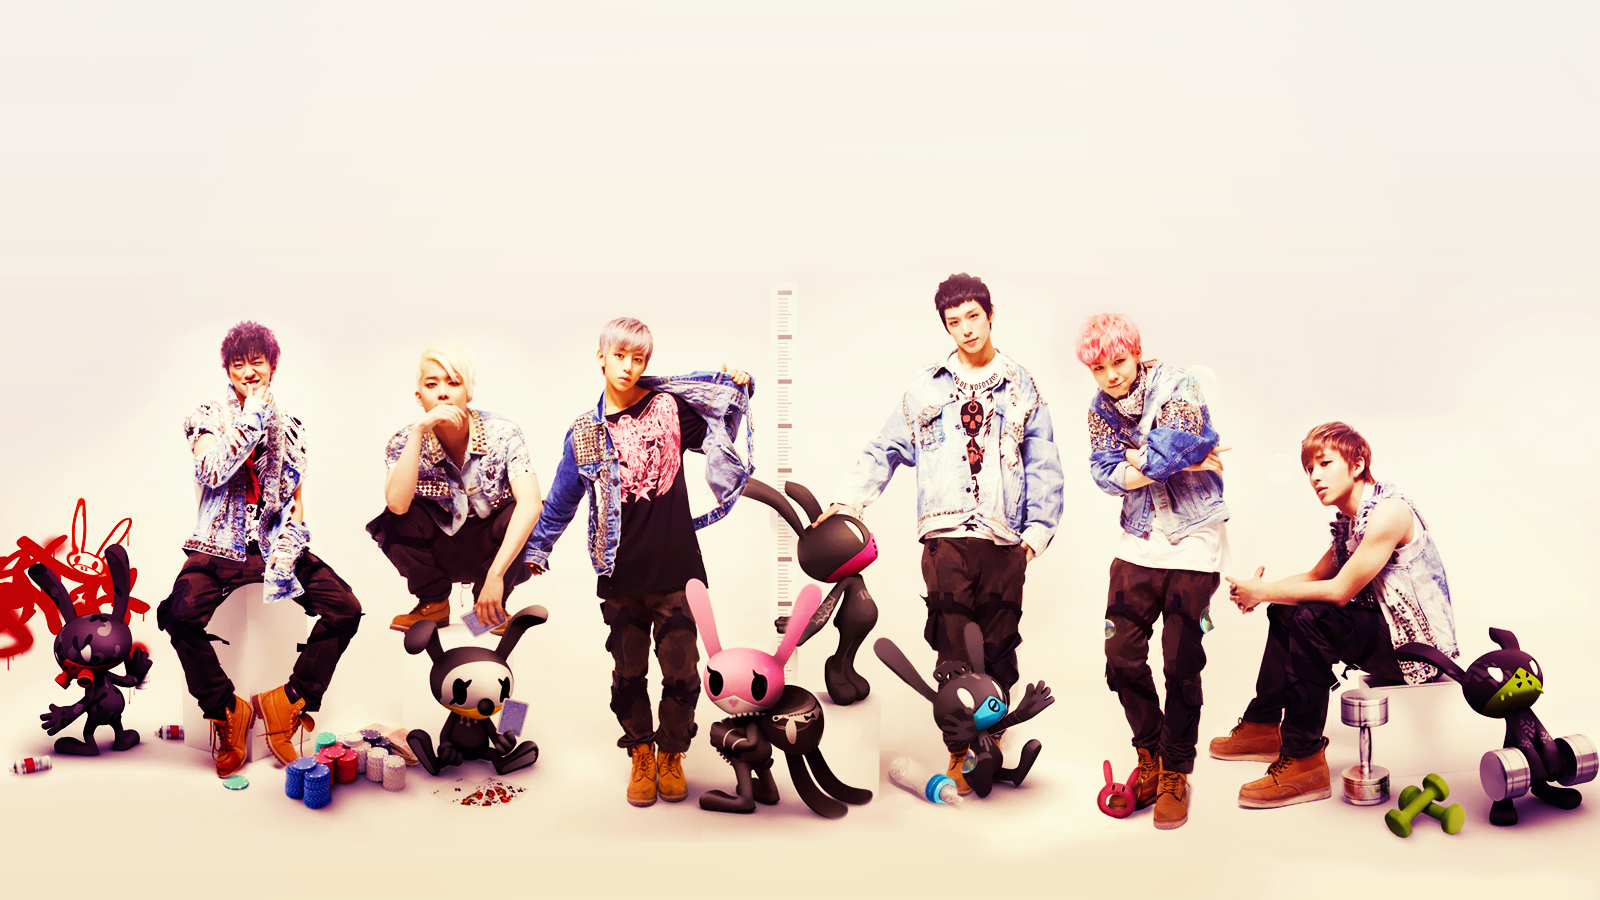 Latest-Kpop-B-A-P-Best-KPOP-HD-Quality-Also-downloa-all-of-B-A-P-Featured-B-wallpaper-wp5807394